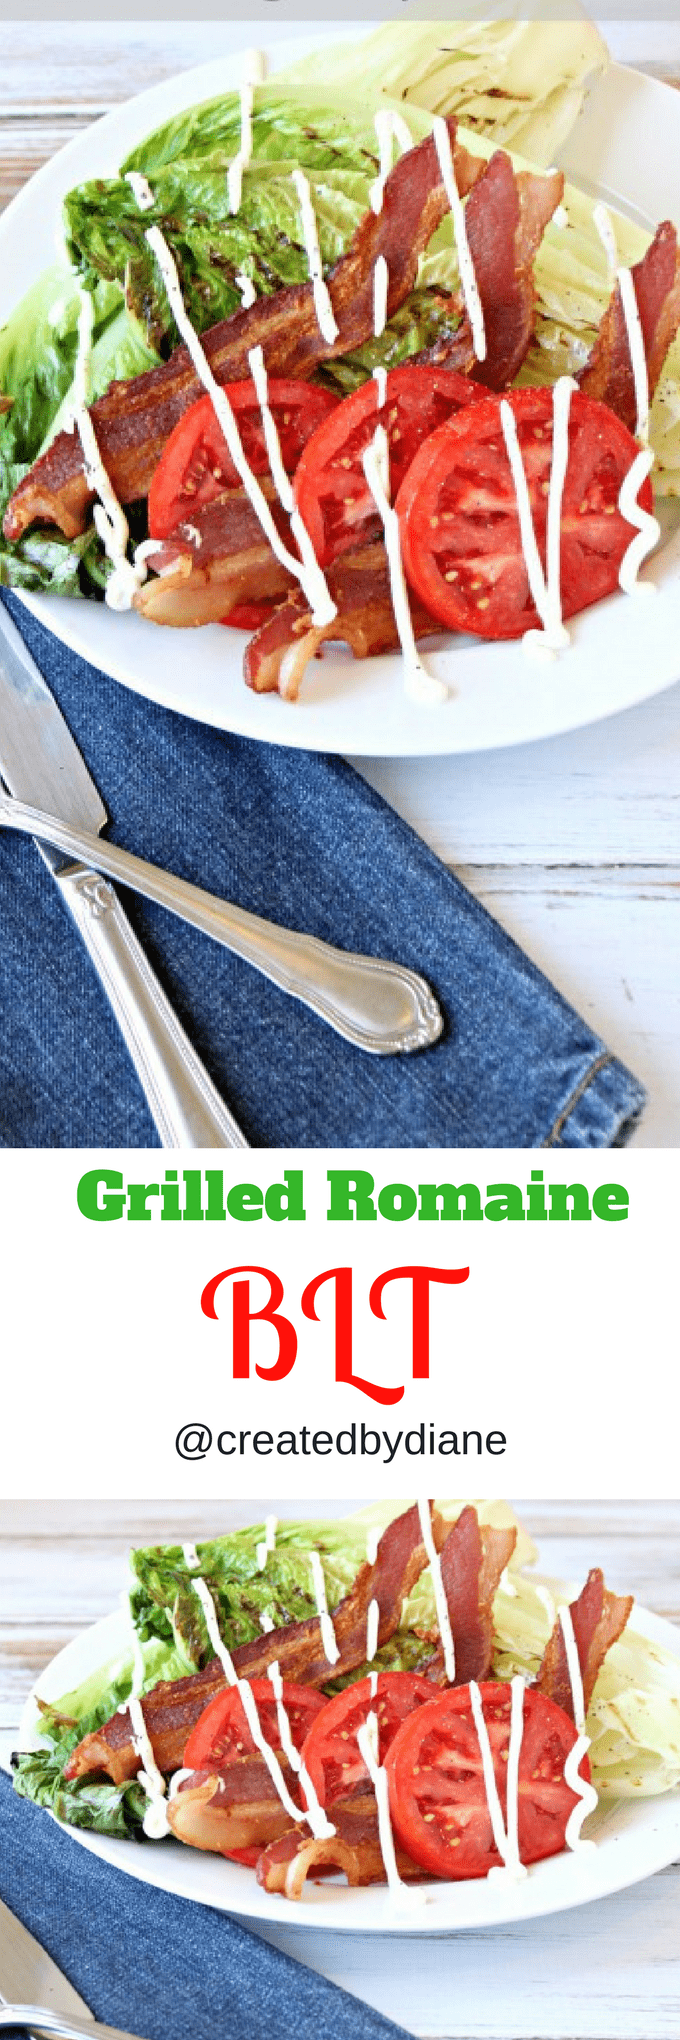 grilled romaine blt with buttermilk dressing @createdbydiane